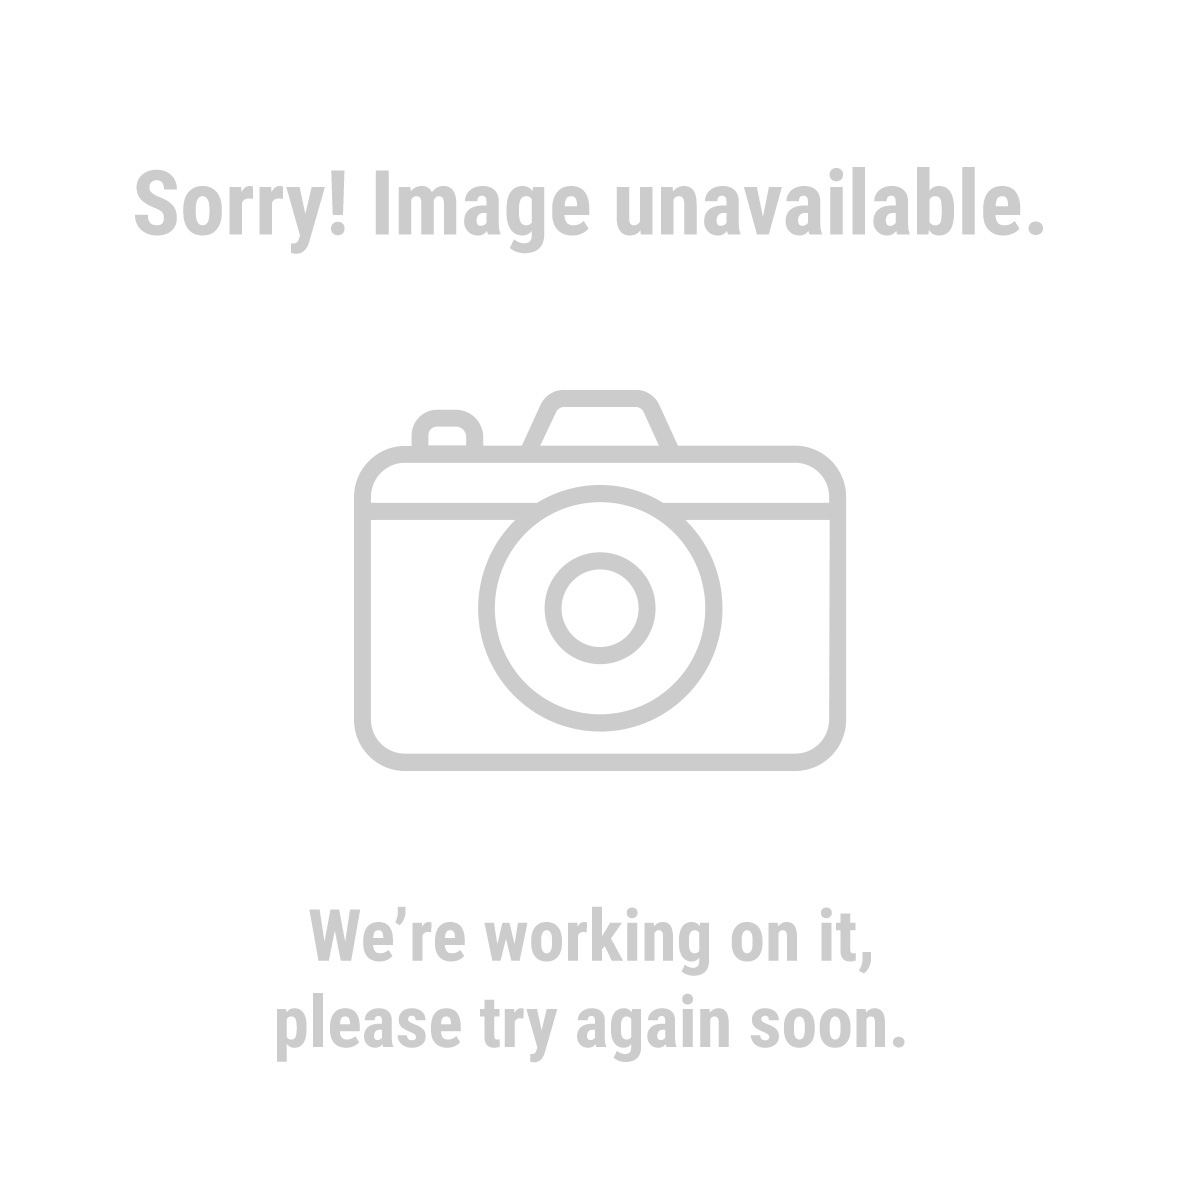 Western Safety 68498 Pack of 100 Powder Blue Nitrile Gloves, Size X-Large